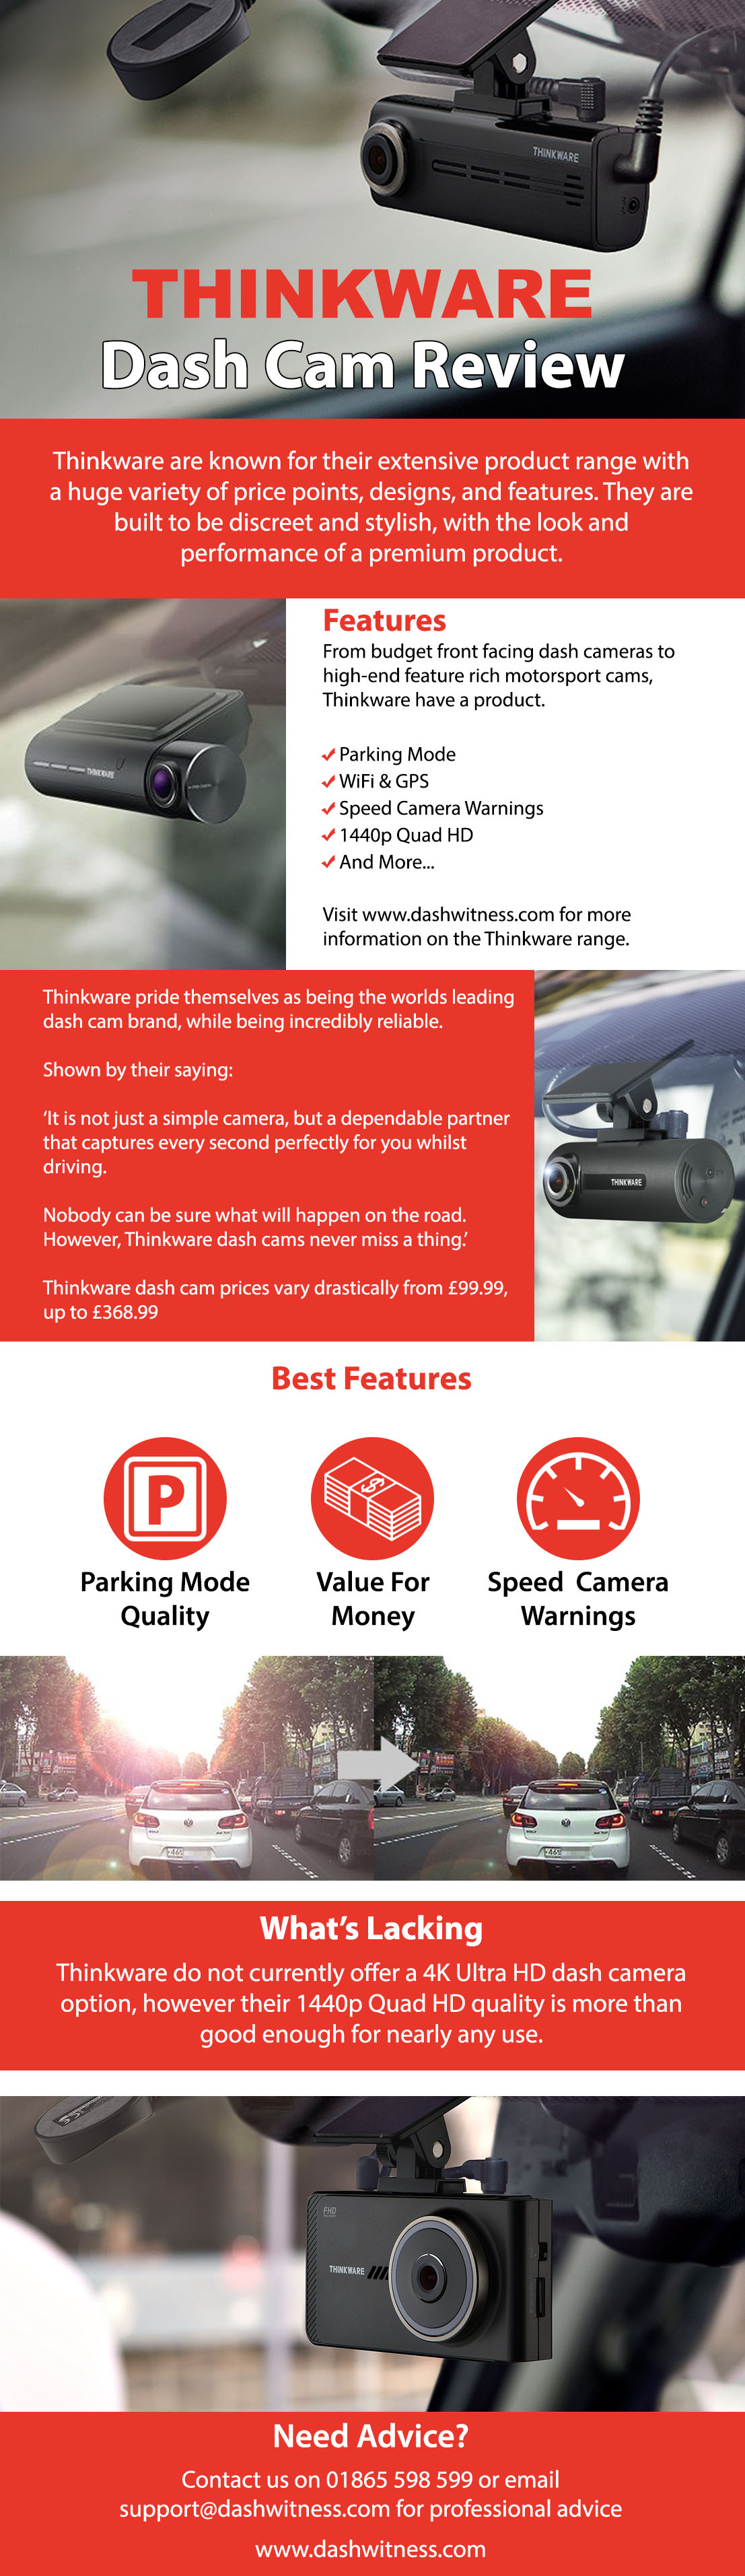 Thinkware dash cam review infographic